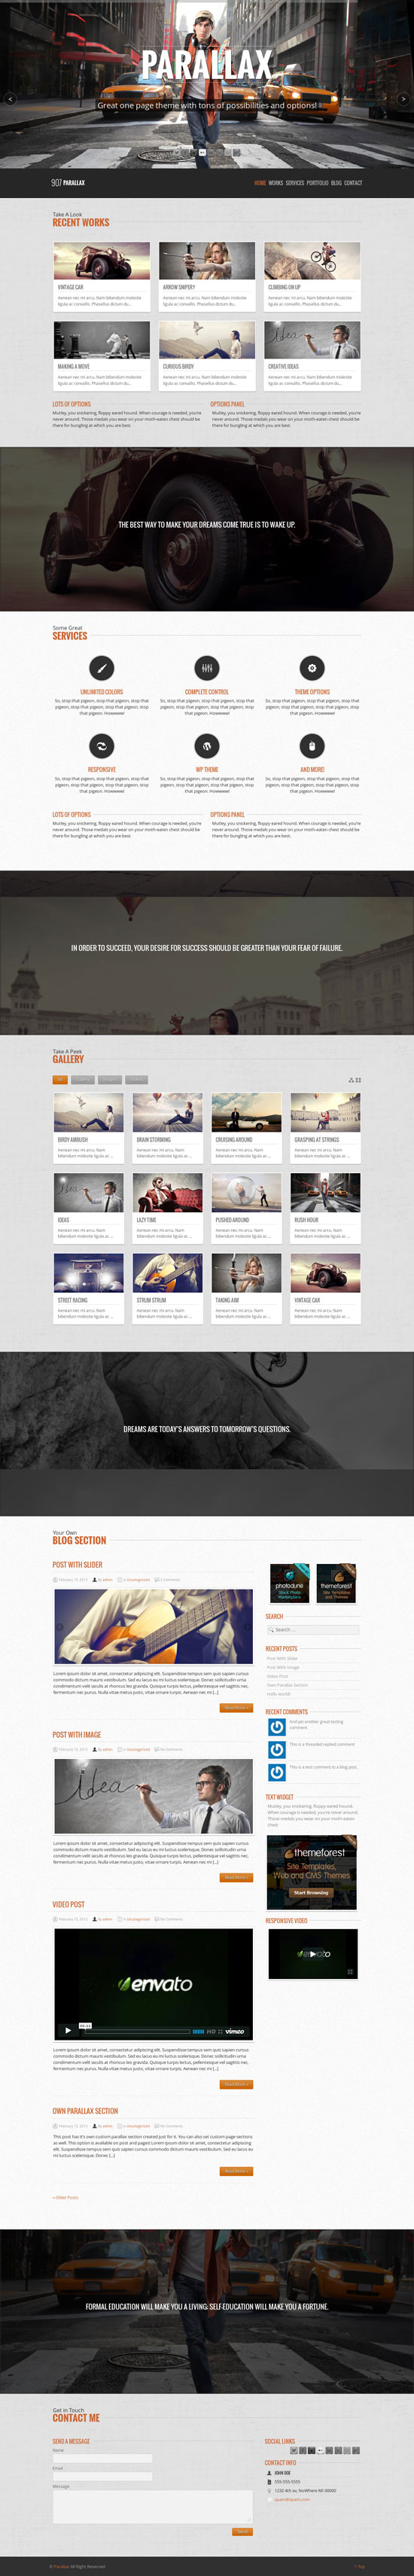 parallax website template - Vatoz.atozdevelopment.co